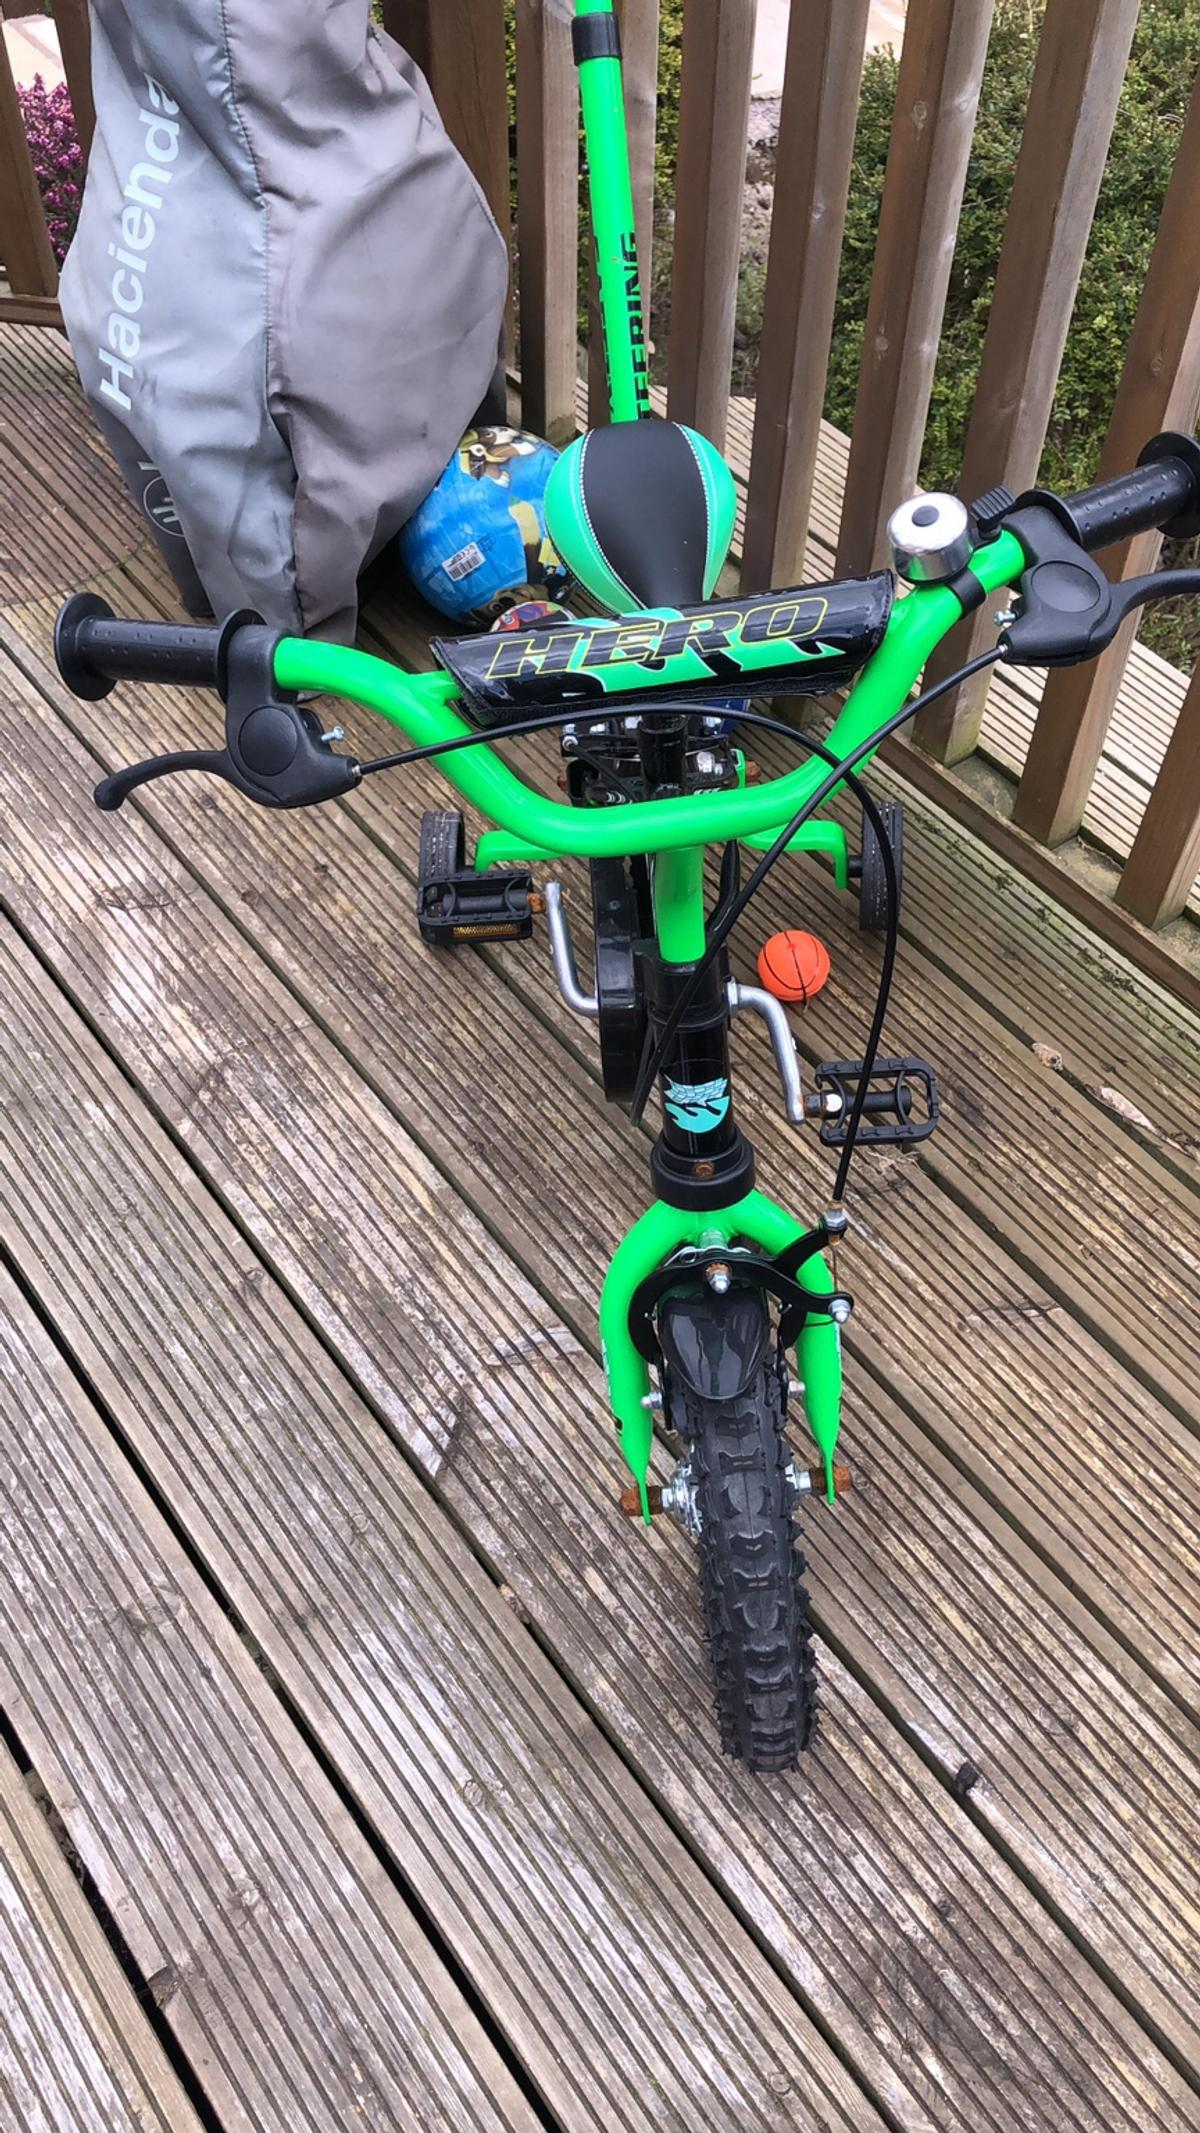 fa44abe4dd8 Boys 12inch bike in B63 Dudley for £25.00 for sale - Shpock